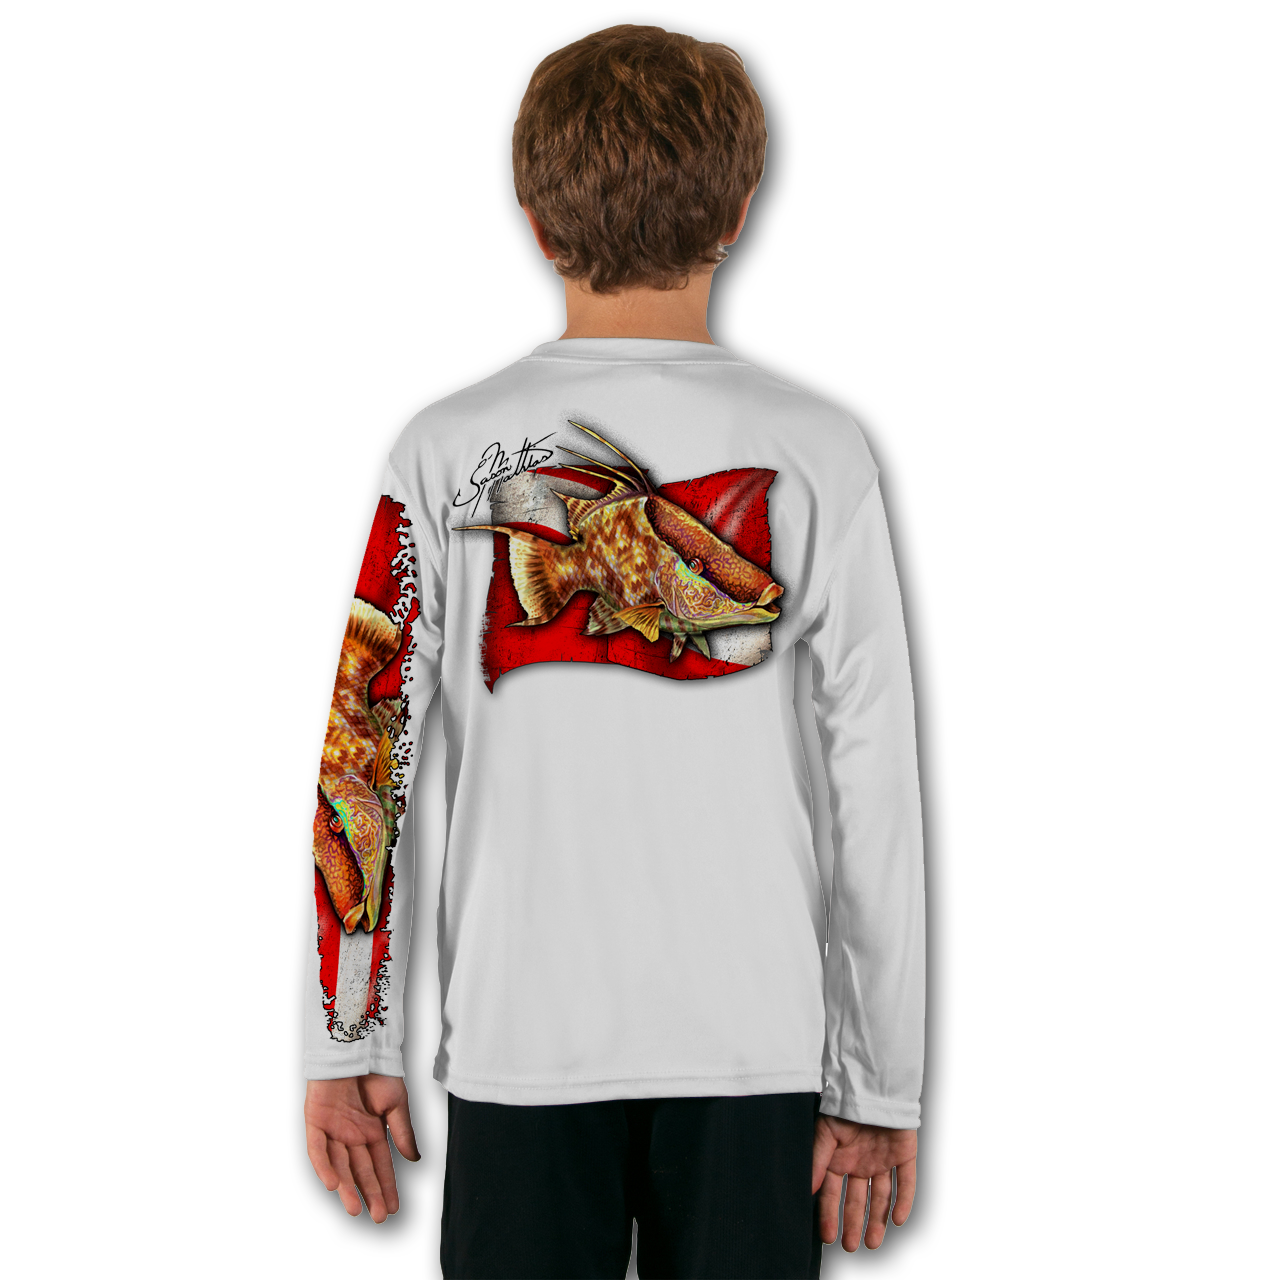 hogfish-dive-white-youth-solar-ls-back-performance-shirt.png